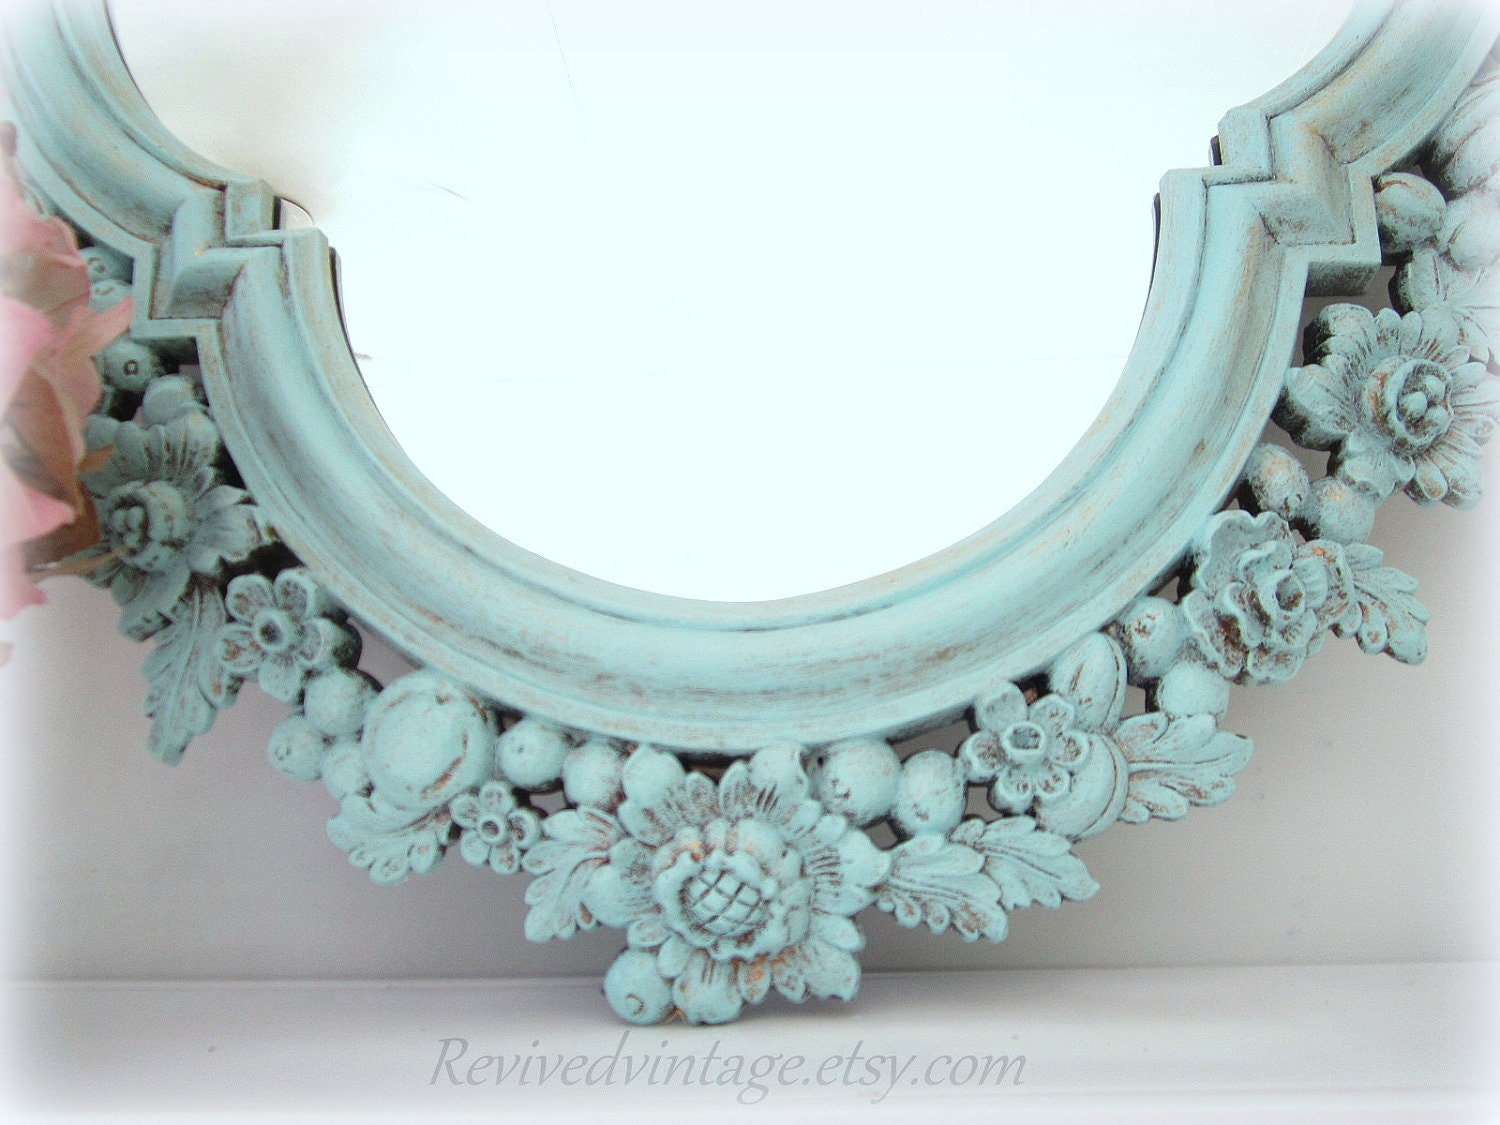 Decorative vintage mirrors for sale large mirror shabby chic for Big mirrors for sale